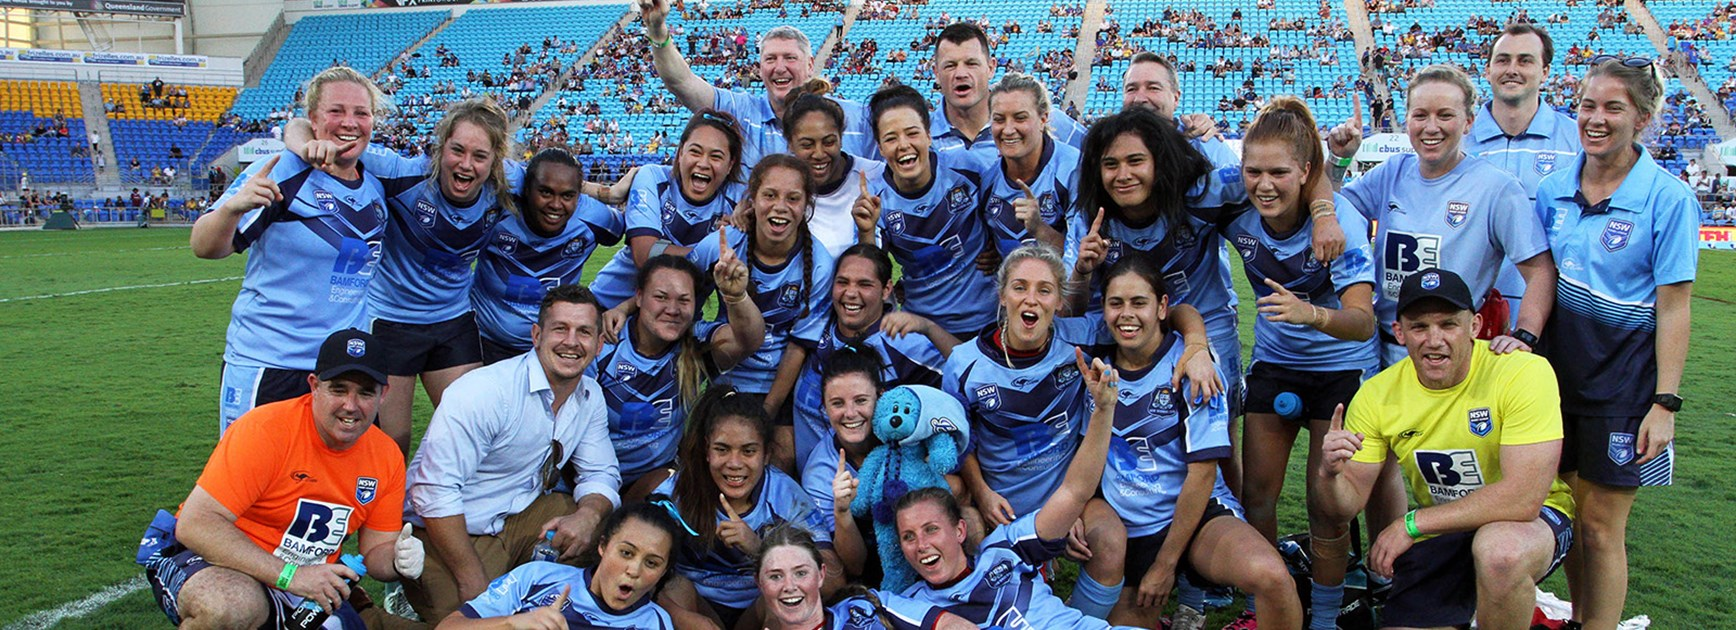 The NSW Women's team celebrate their first Interstate Challenge victory.